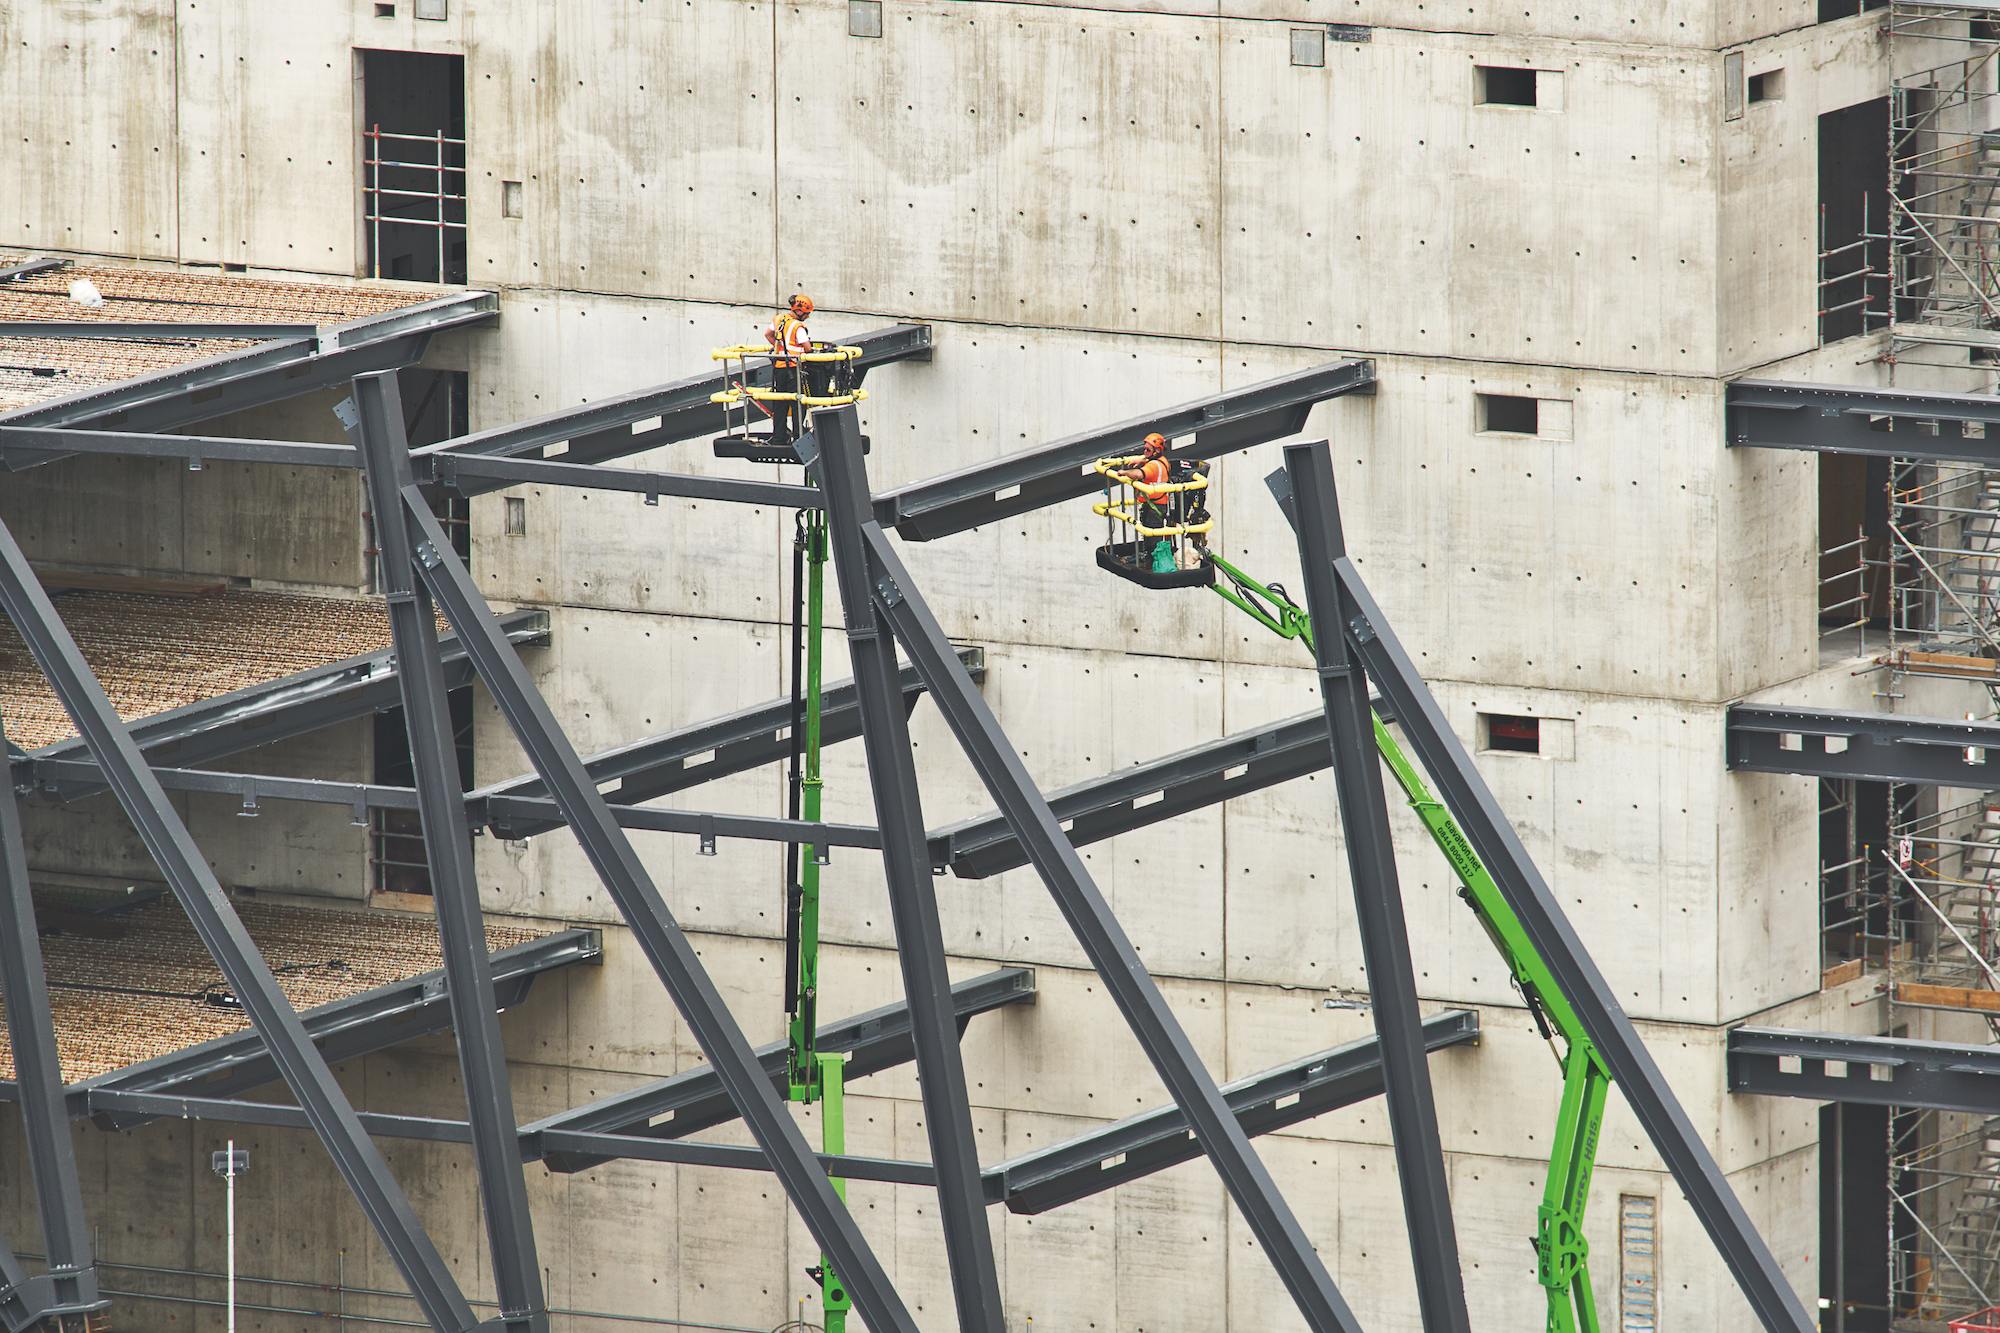 Construction image of beam and exoskeleton installation at a blank concrete wall